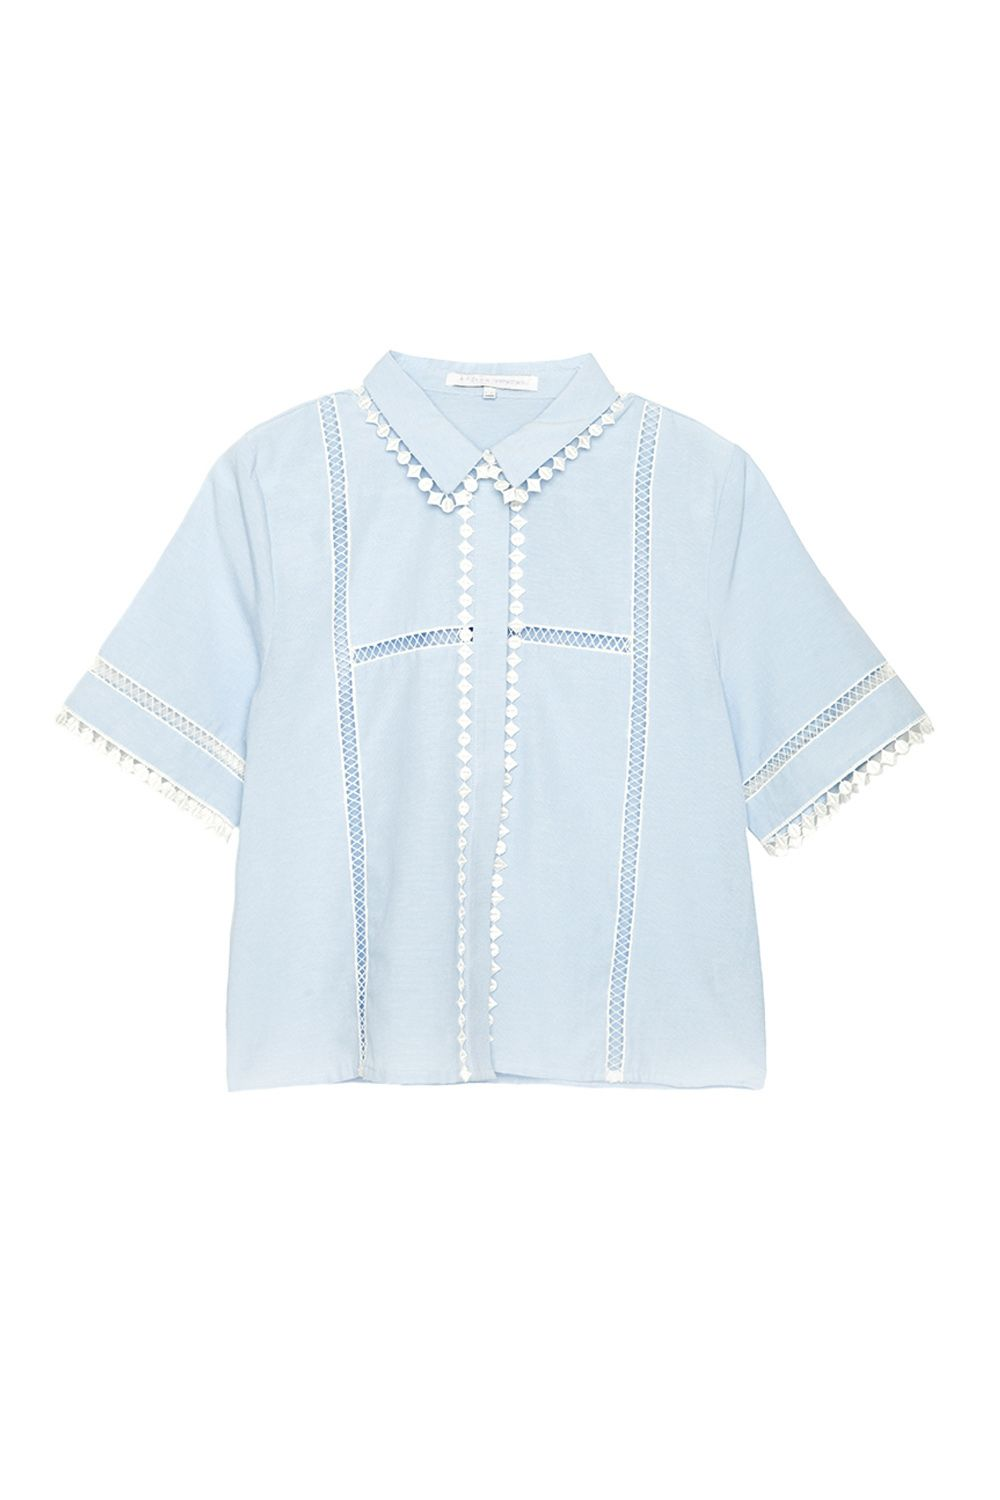 """<p>Cute-chic, and basically an outfit in a shirt—just put on some innocuous pants and you're good.</p><p>A Common Space crochet shirt, $38, <a href=""""http://www.acommonspace.com/whats-new/crochet-trim-blouse"""">acommonspace.com</a>.</p>"""